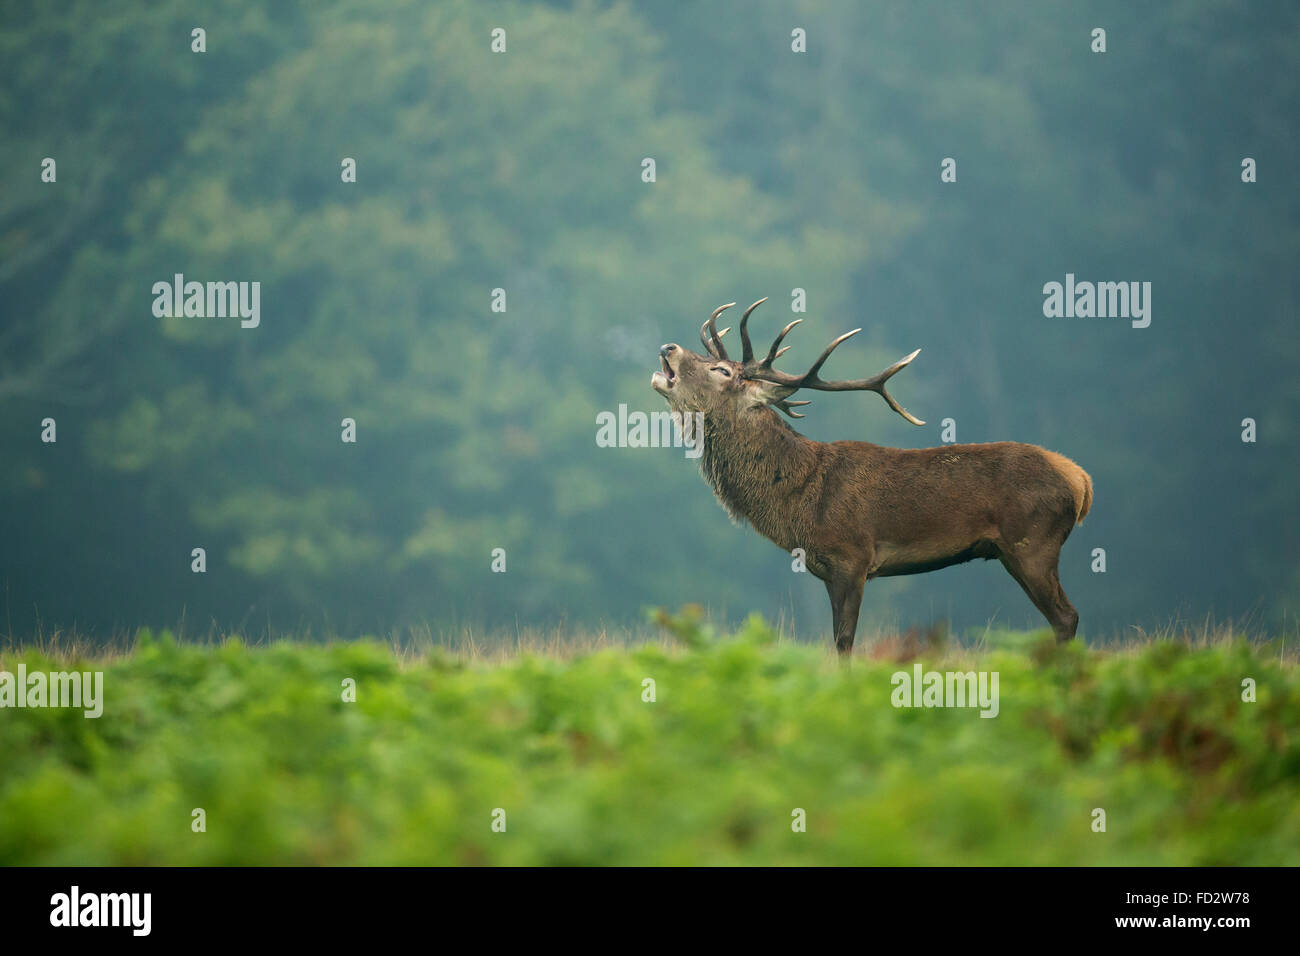 Red deer (Cervus elaphus) stag in the early morning mist during the rutting season - Stock Image